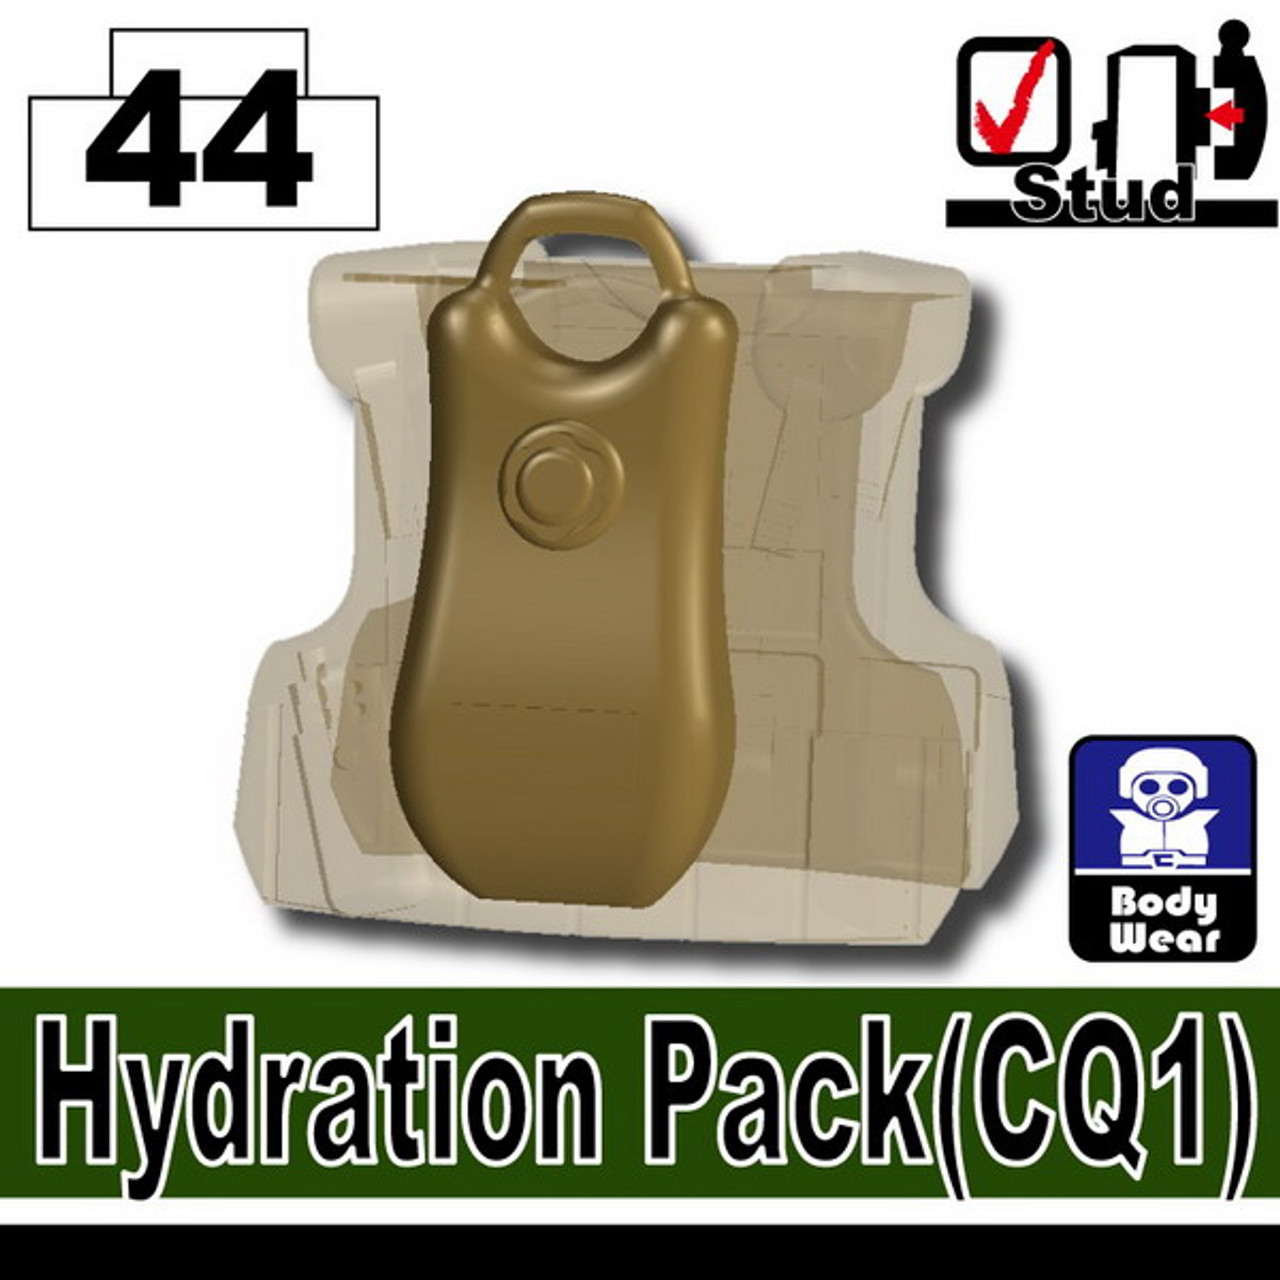 Minifig.Cat Hydration Pack (CQ1)